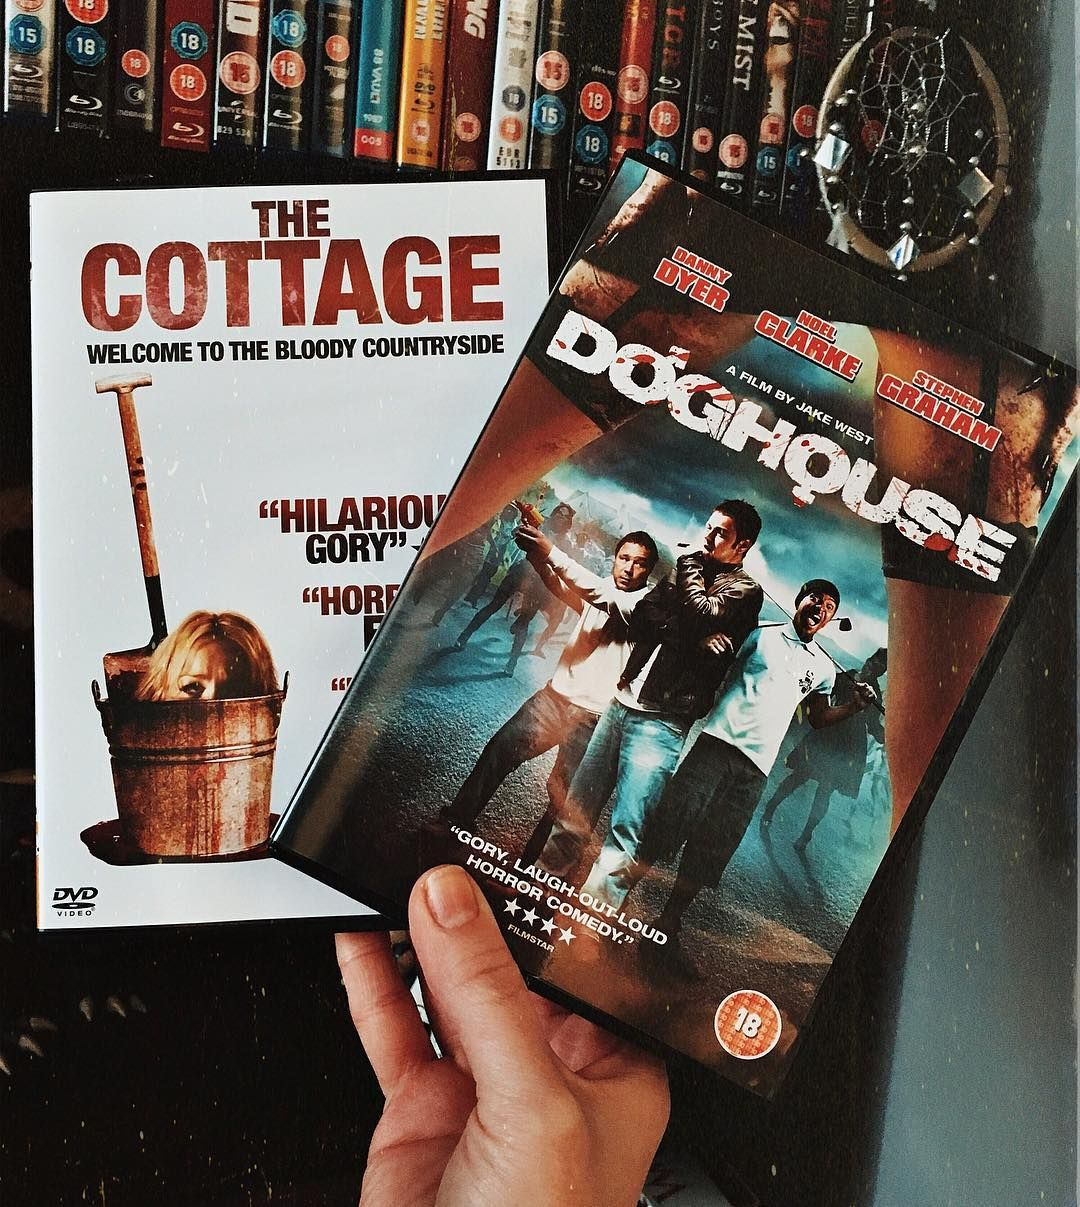 Movies Arrived In The Mail Today Thecottage Doghouse Dannydyer